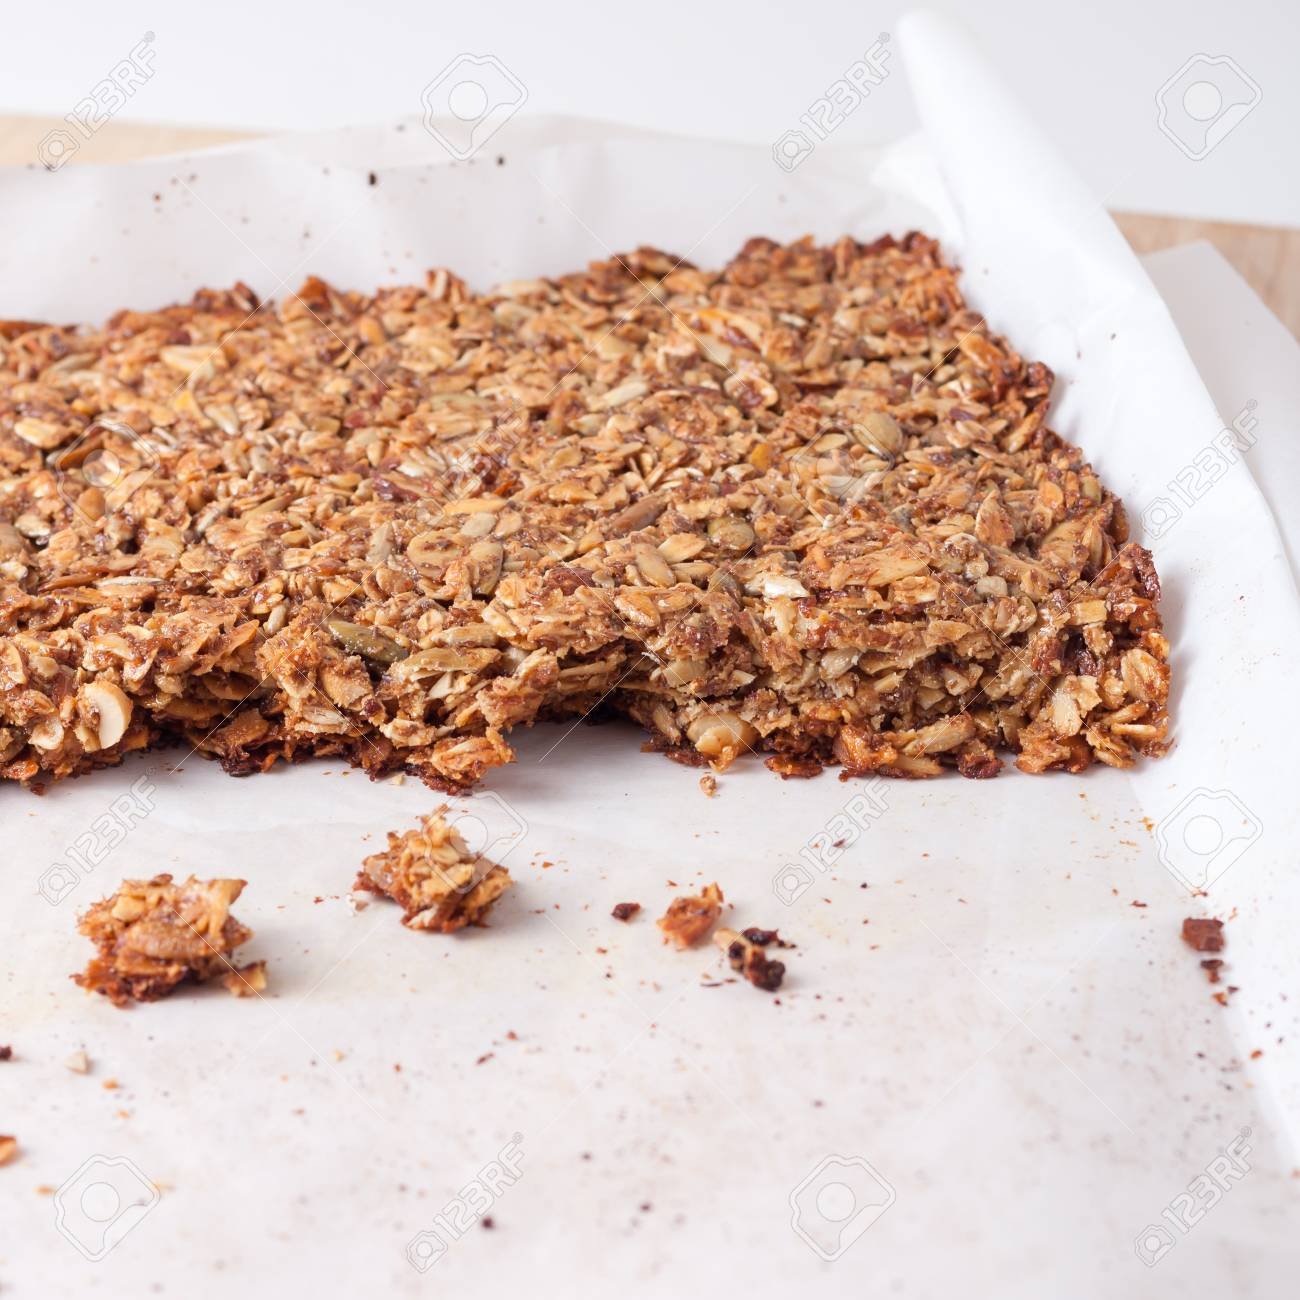 fresh home made granola bars made with coconut oil, nuts and seeds on a baking sheet, isolated - 44167900